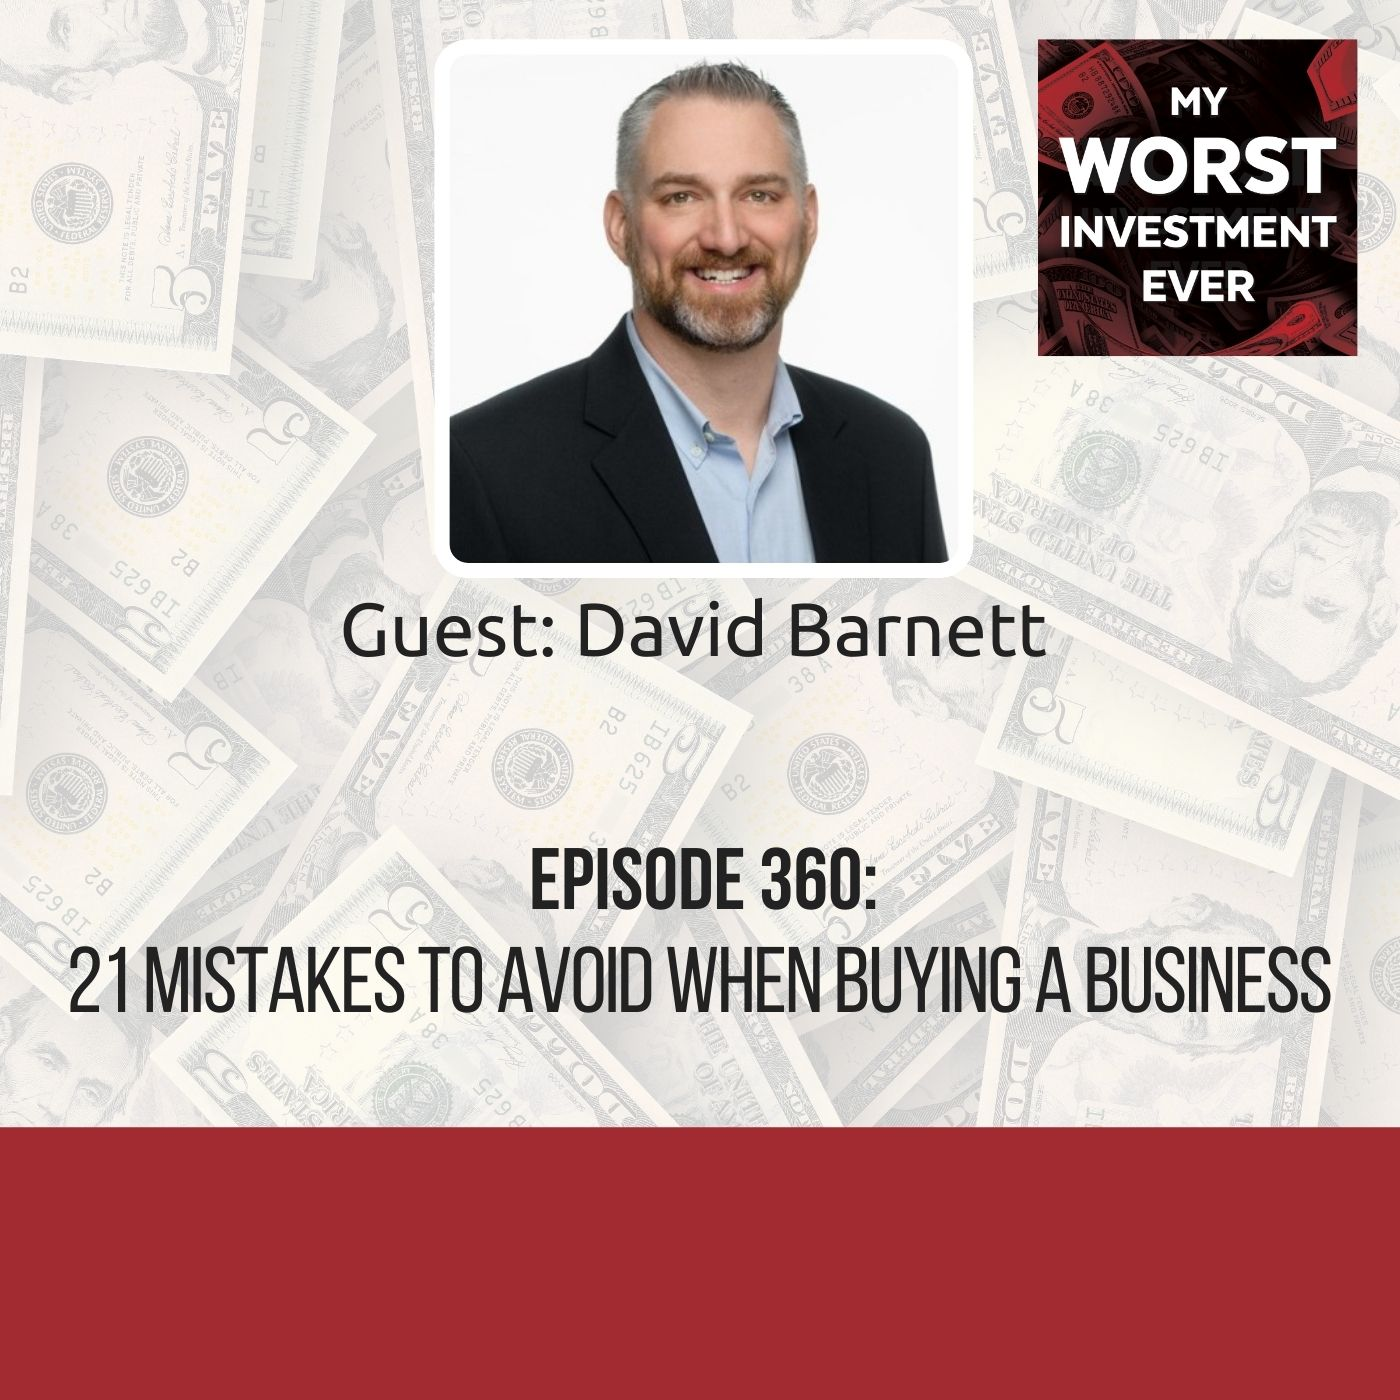 David Barnett – 21 Mistakes to Avoid When Buying a Business